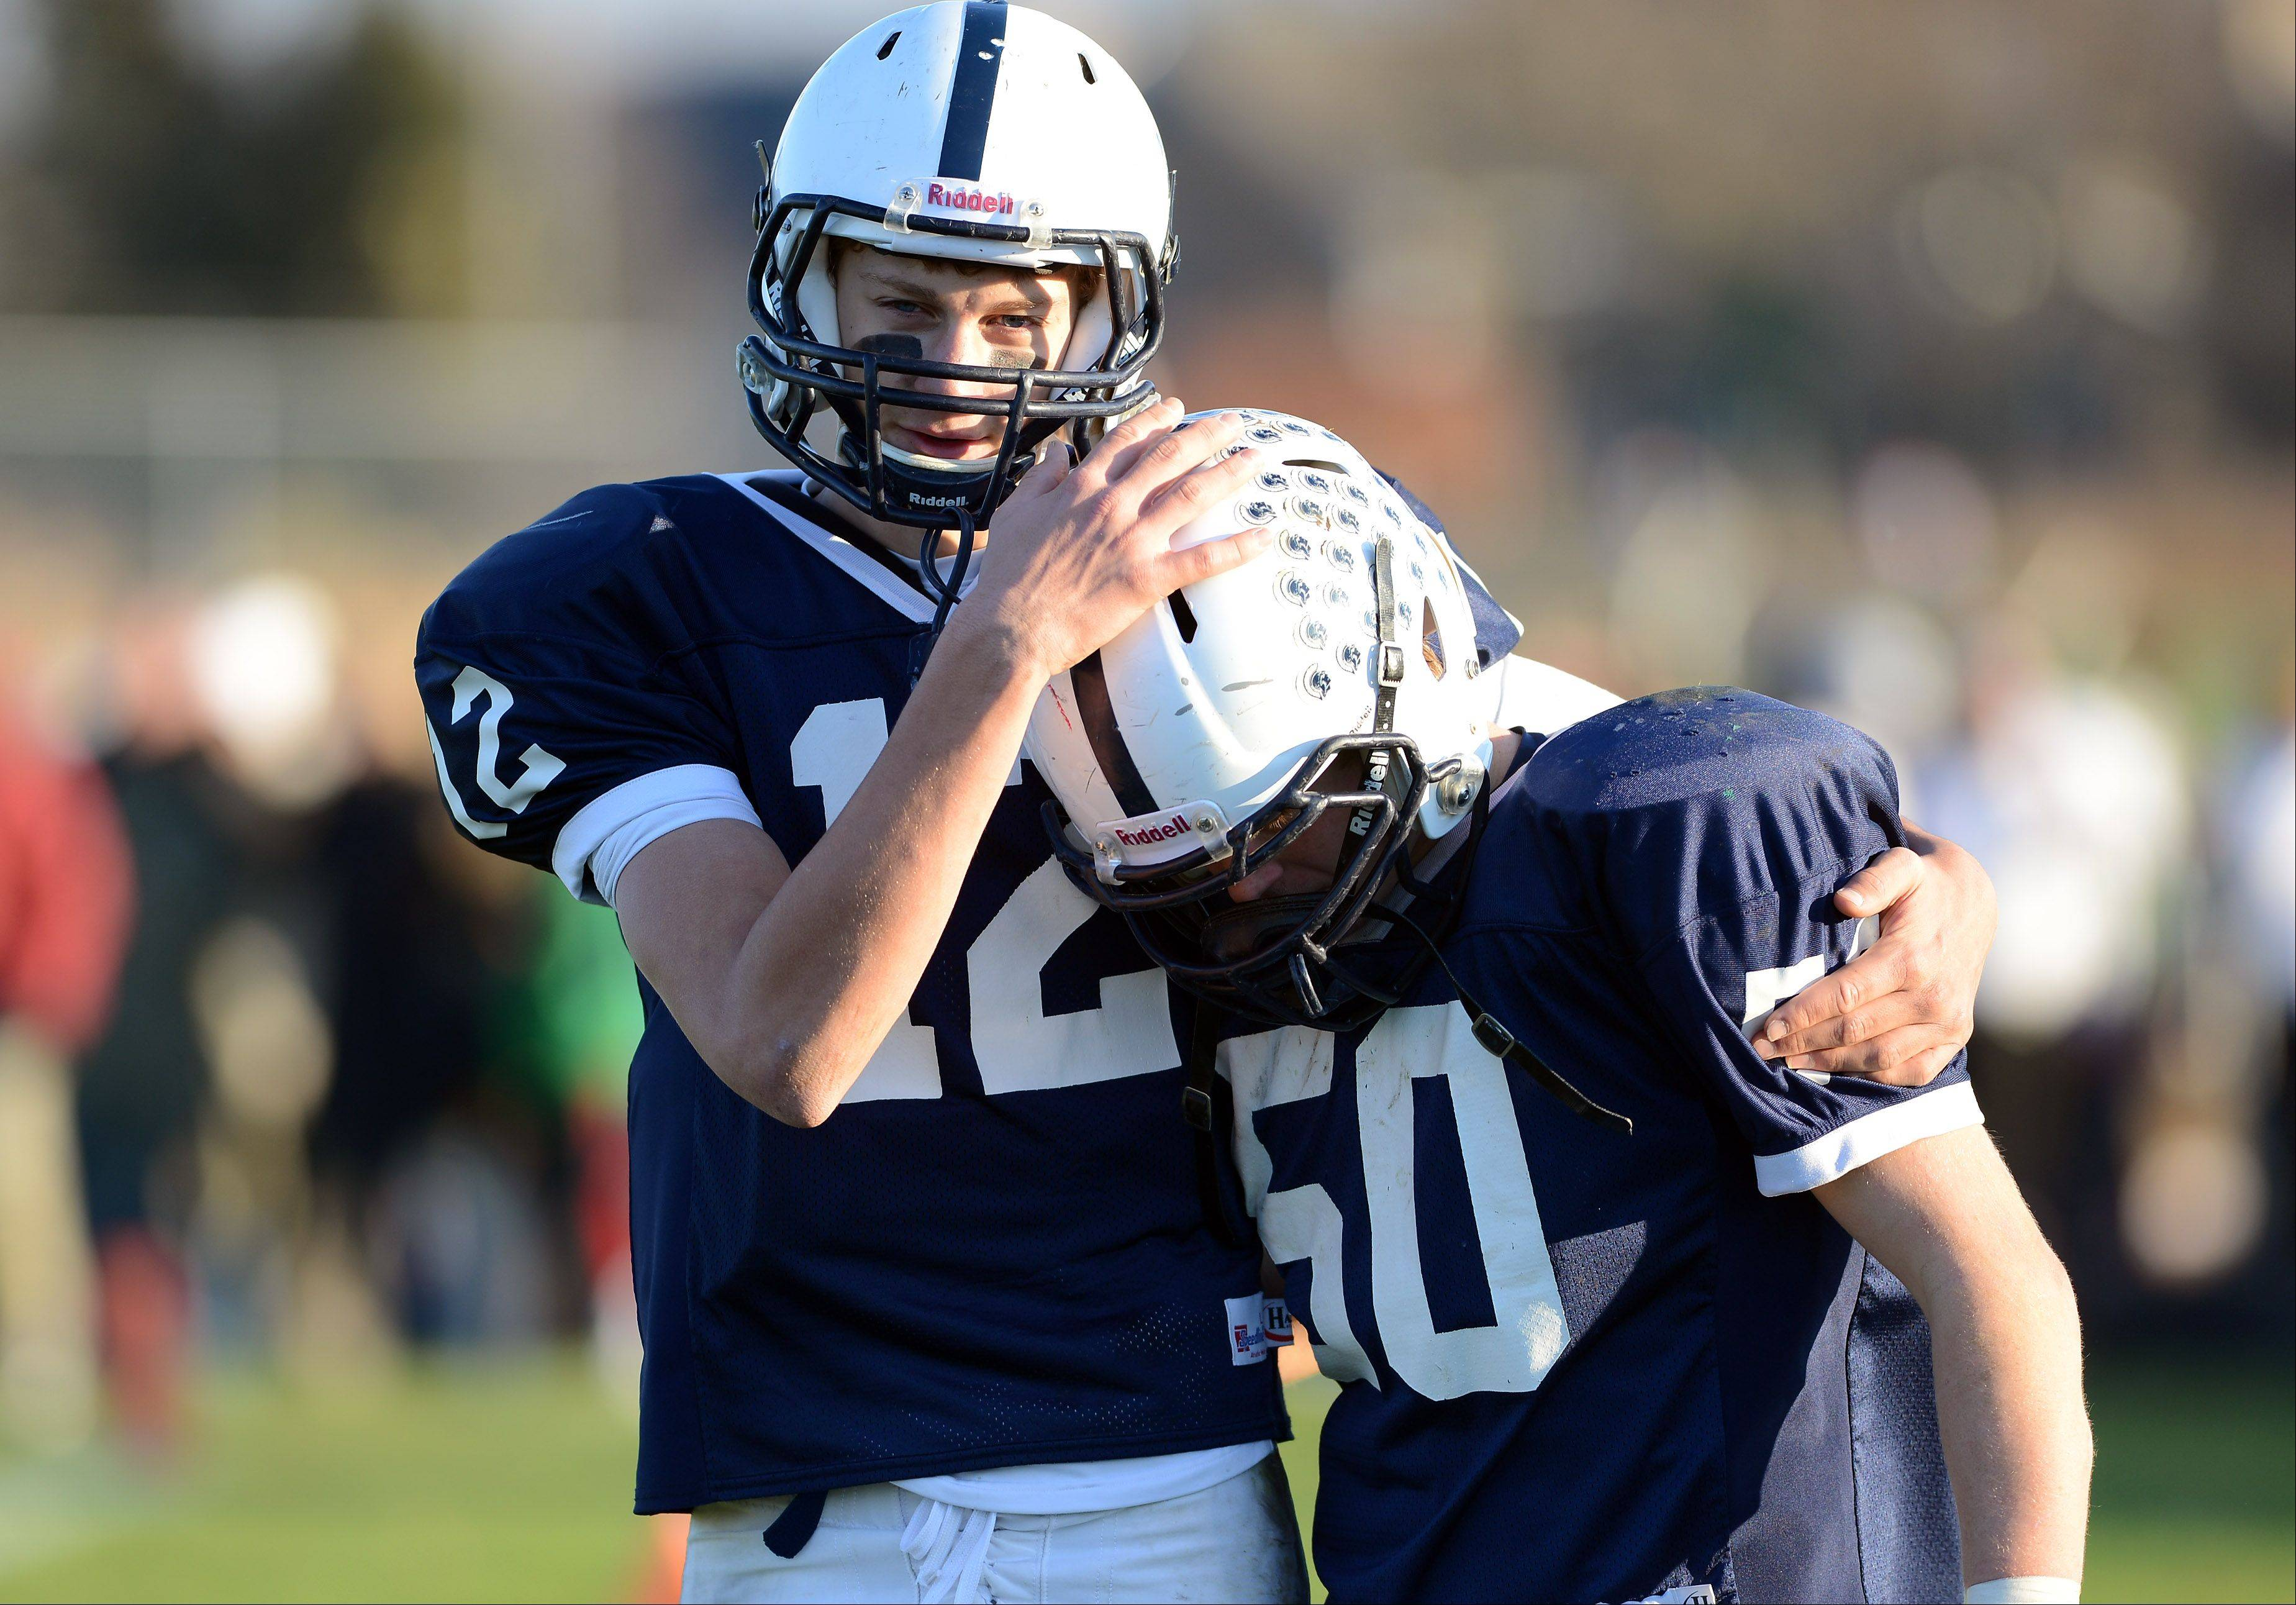 Cary-Grove's Jason Gregoire (12) consoles teammate Emerson Kersten (50) after their loss to Boylan Catholic Saturday in Cary.